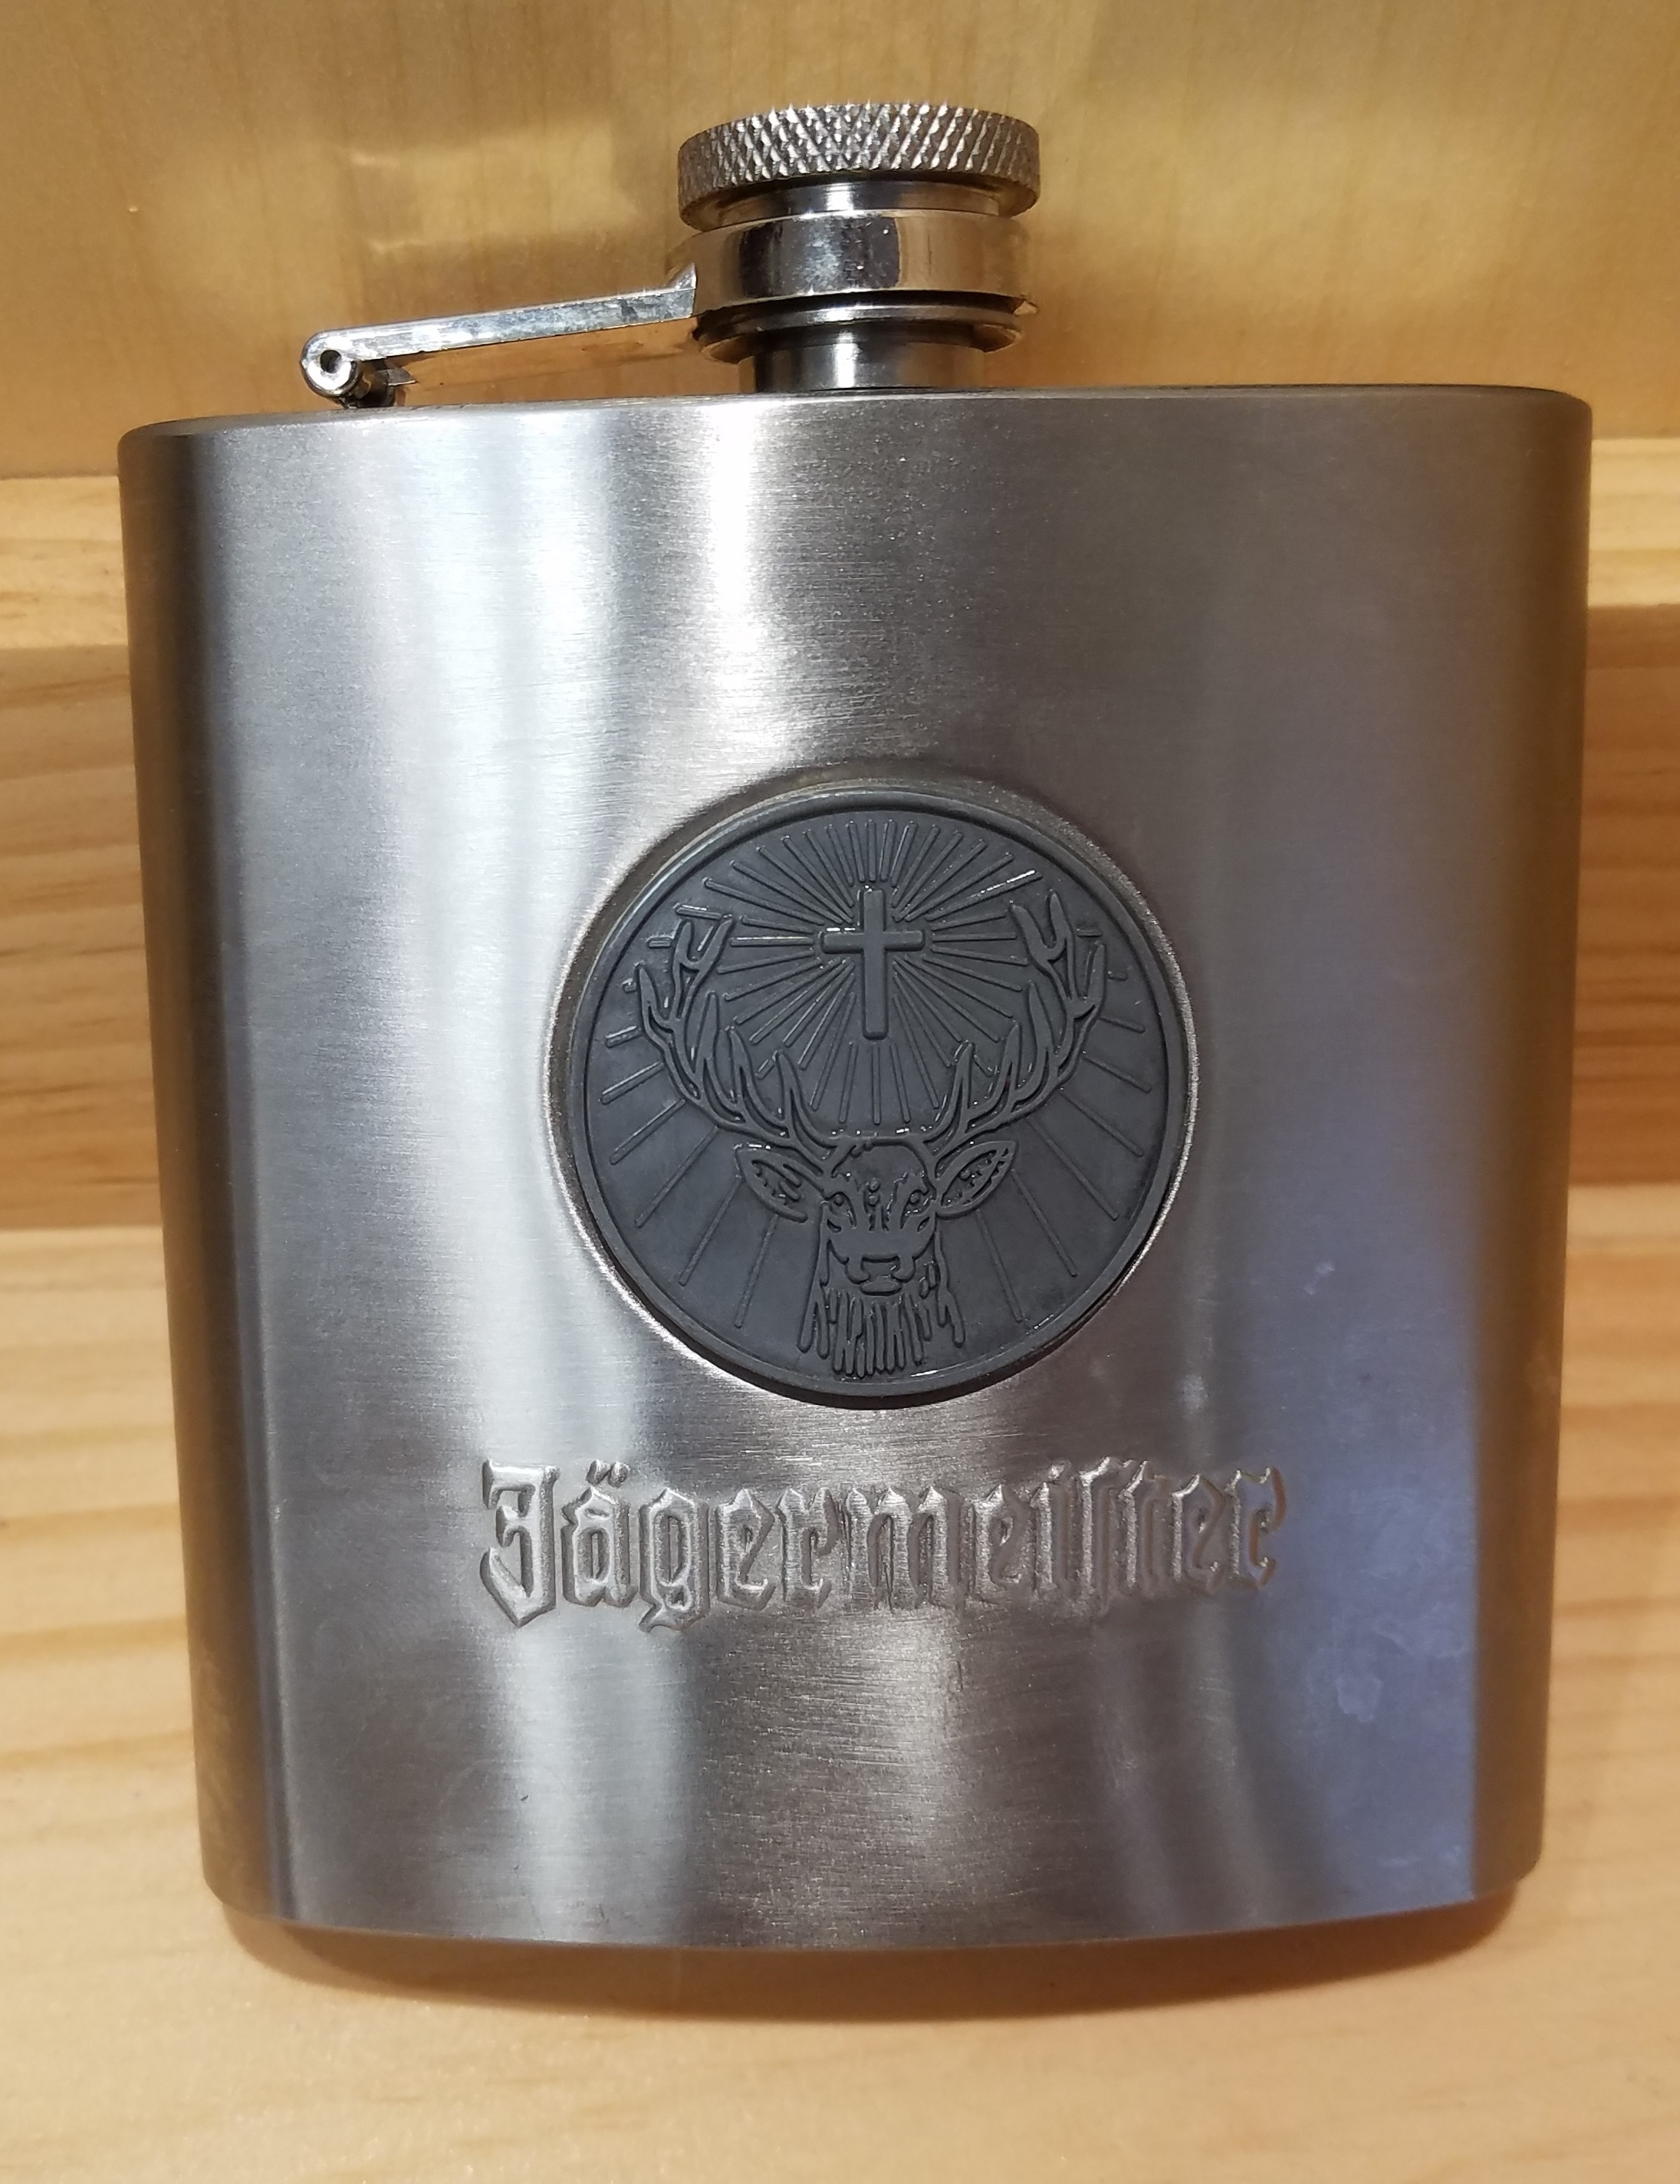 J. MARTUNNI JAGER FLASK  HOUSEHOLD